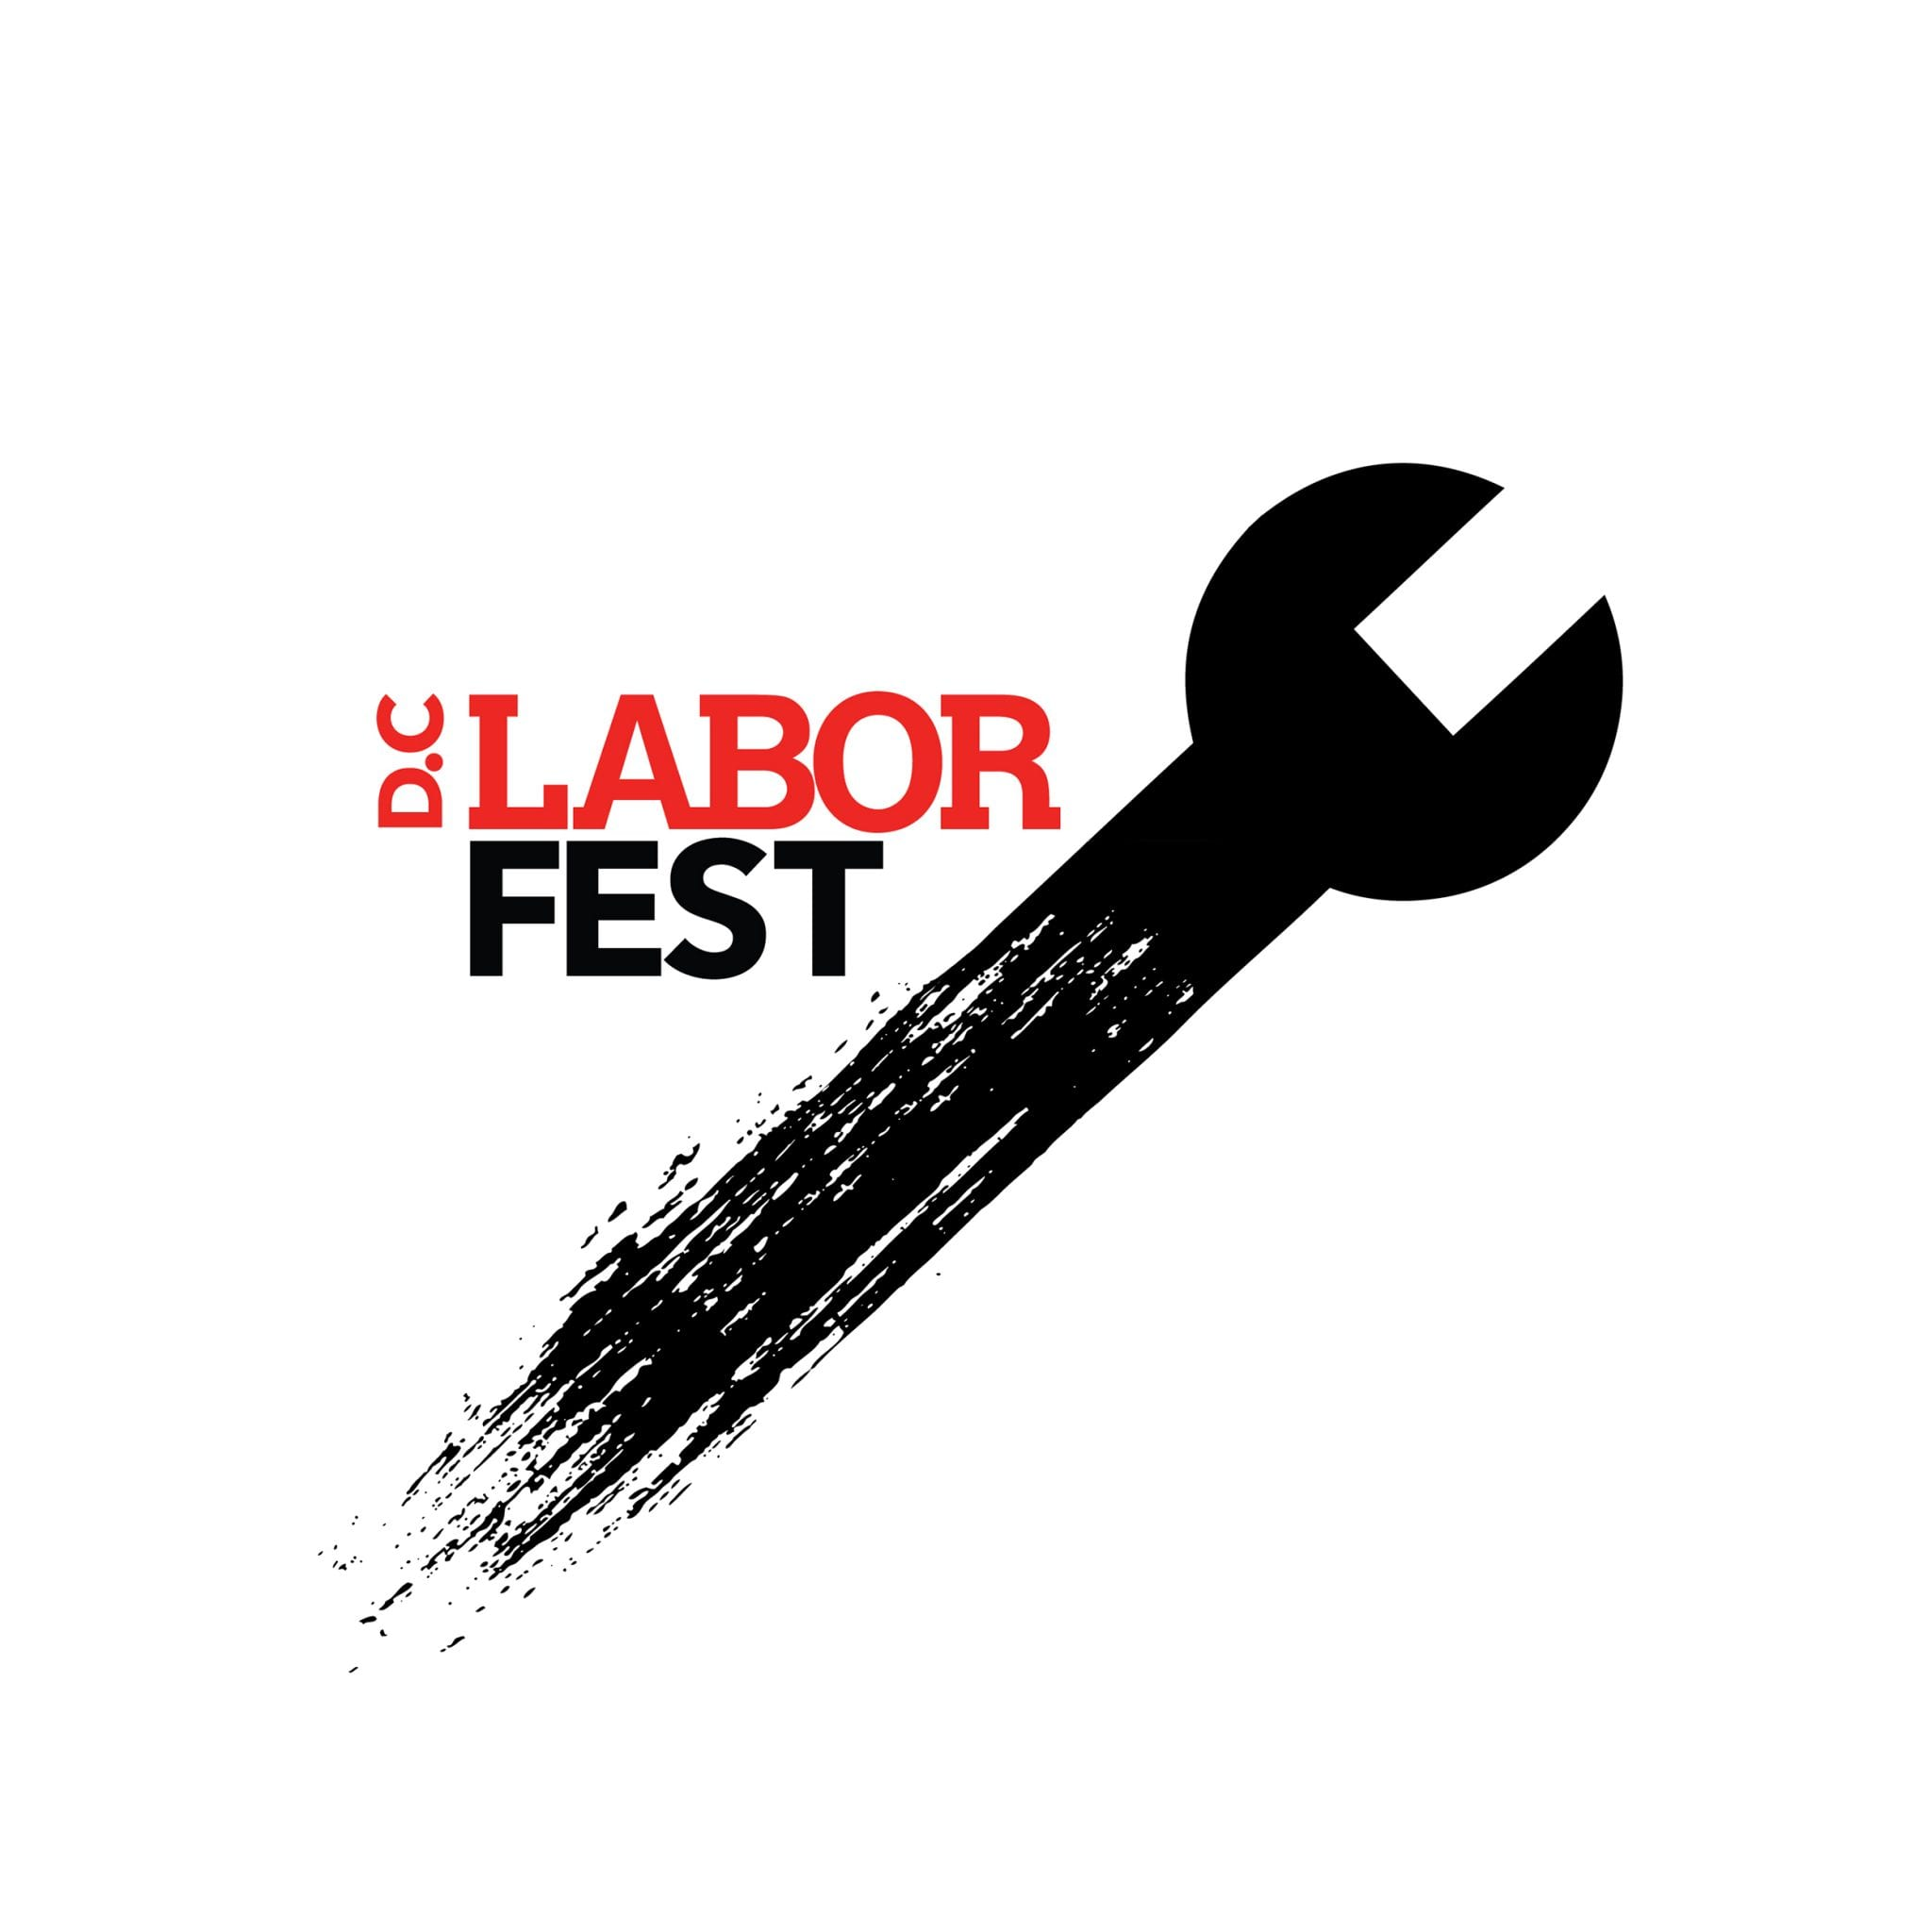 Get Ready for a Month of Labor Cultural Events at DC LaborFest